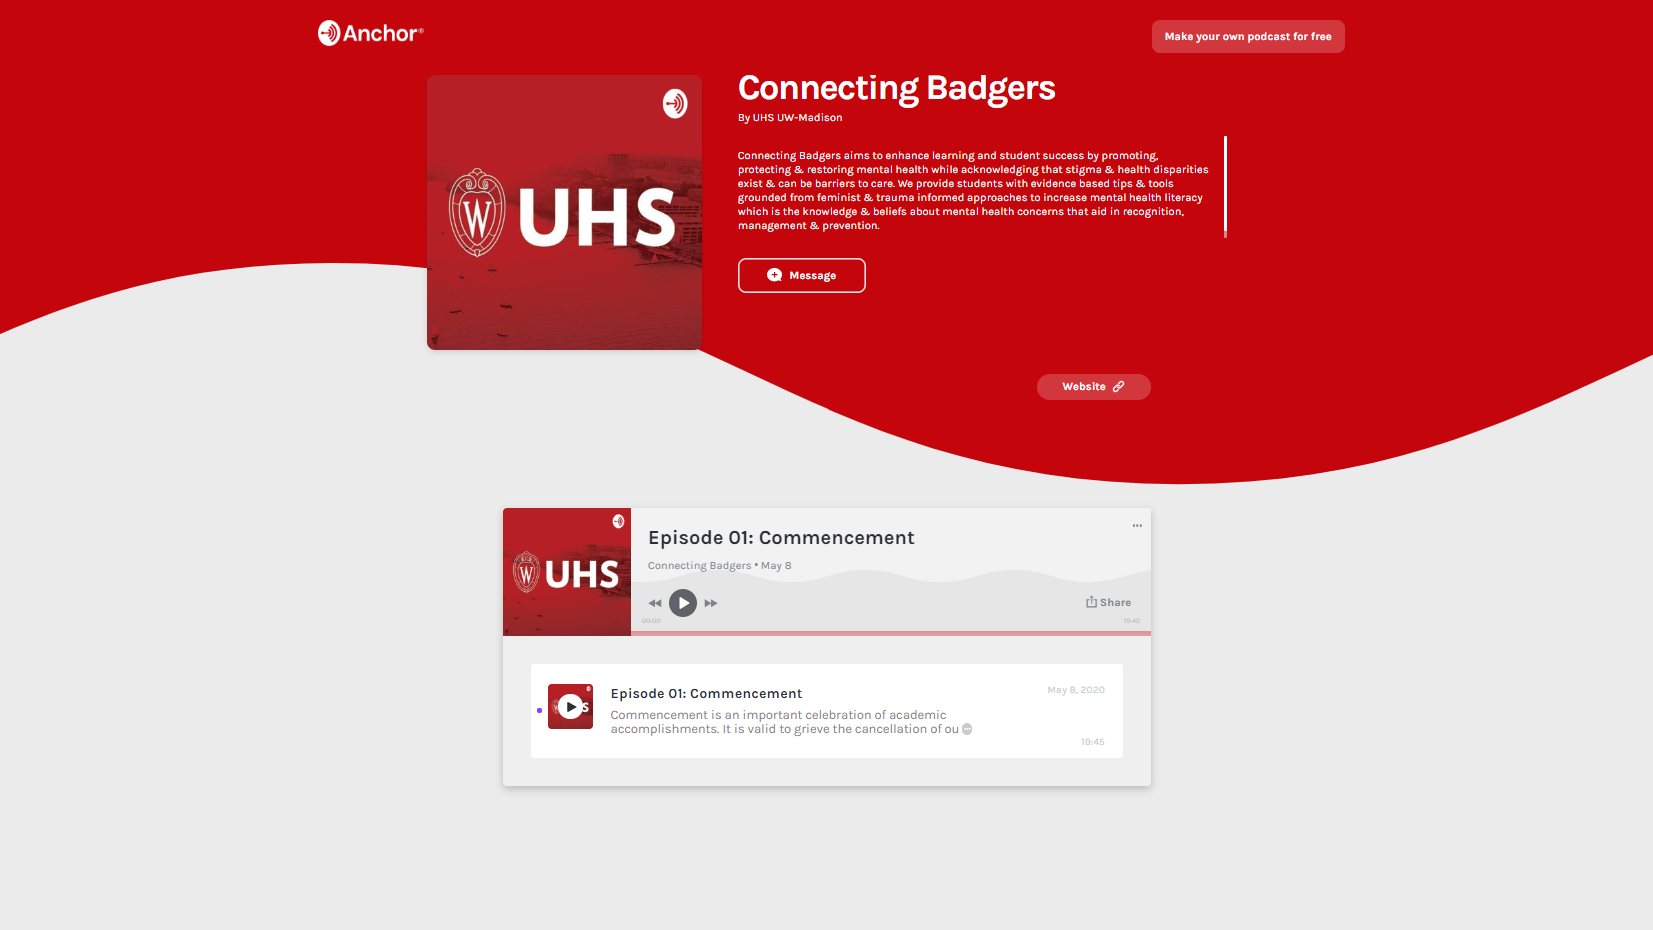 image of the UHS podcast webpage called 'Connecting Badgers'